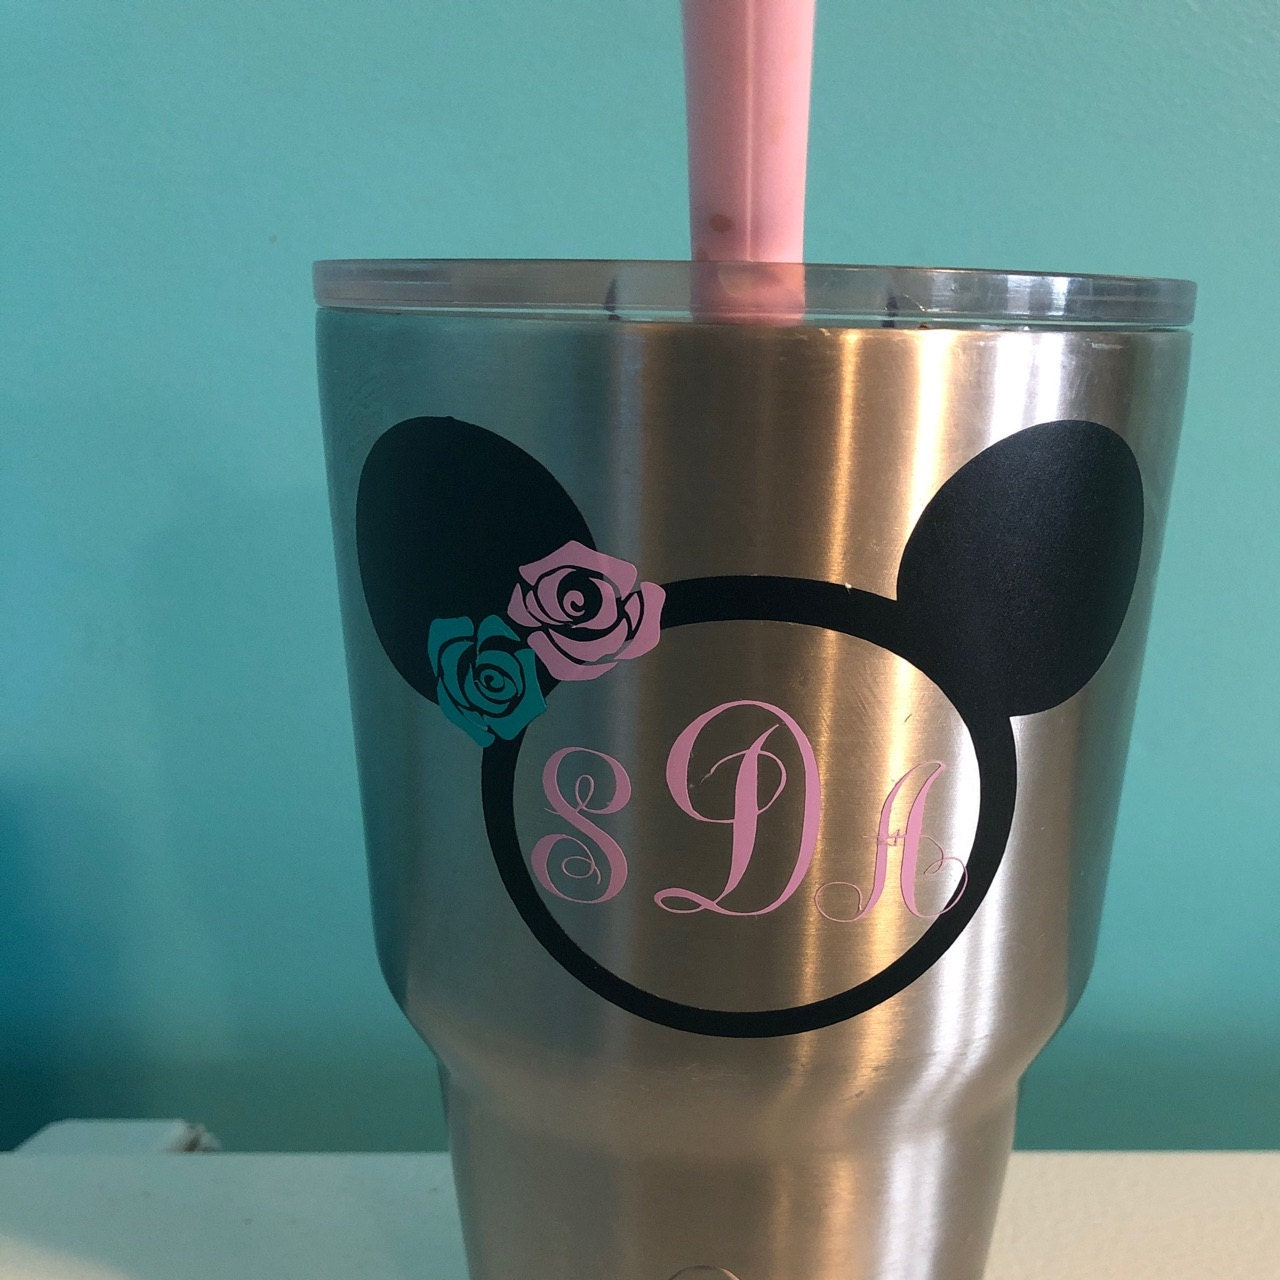 Samantha Despain added a photo of their purchase